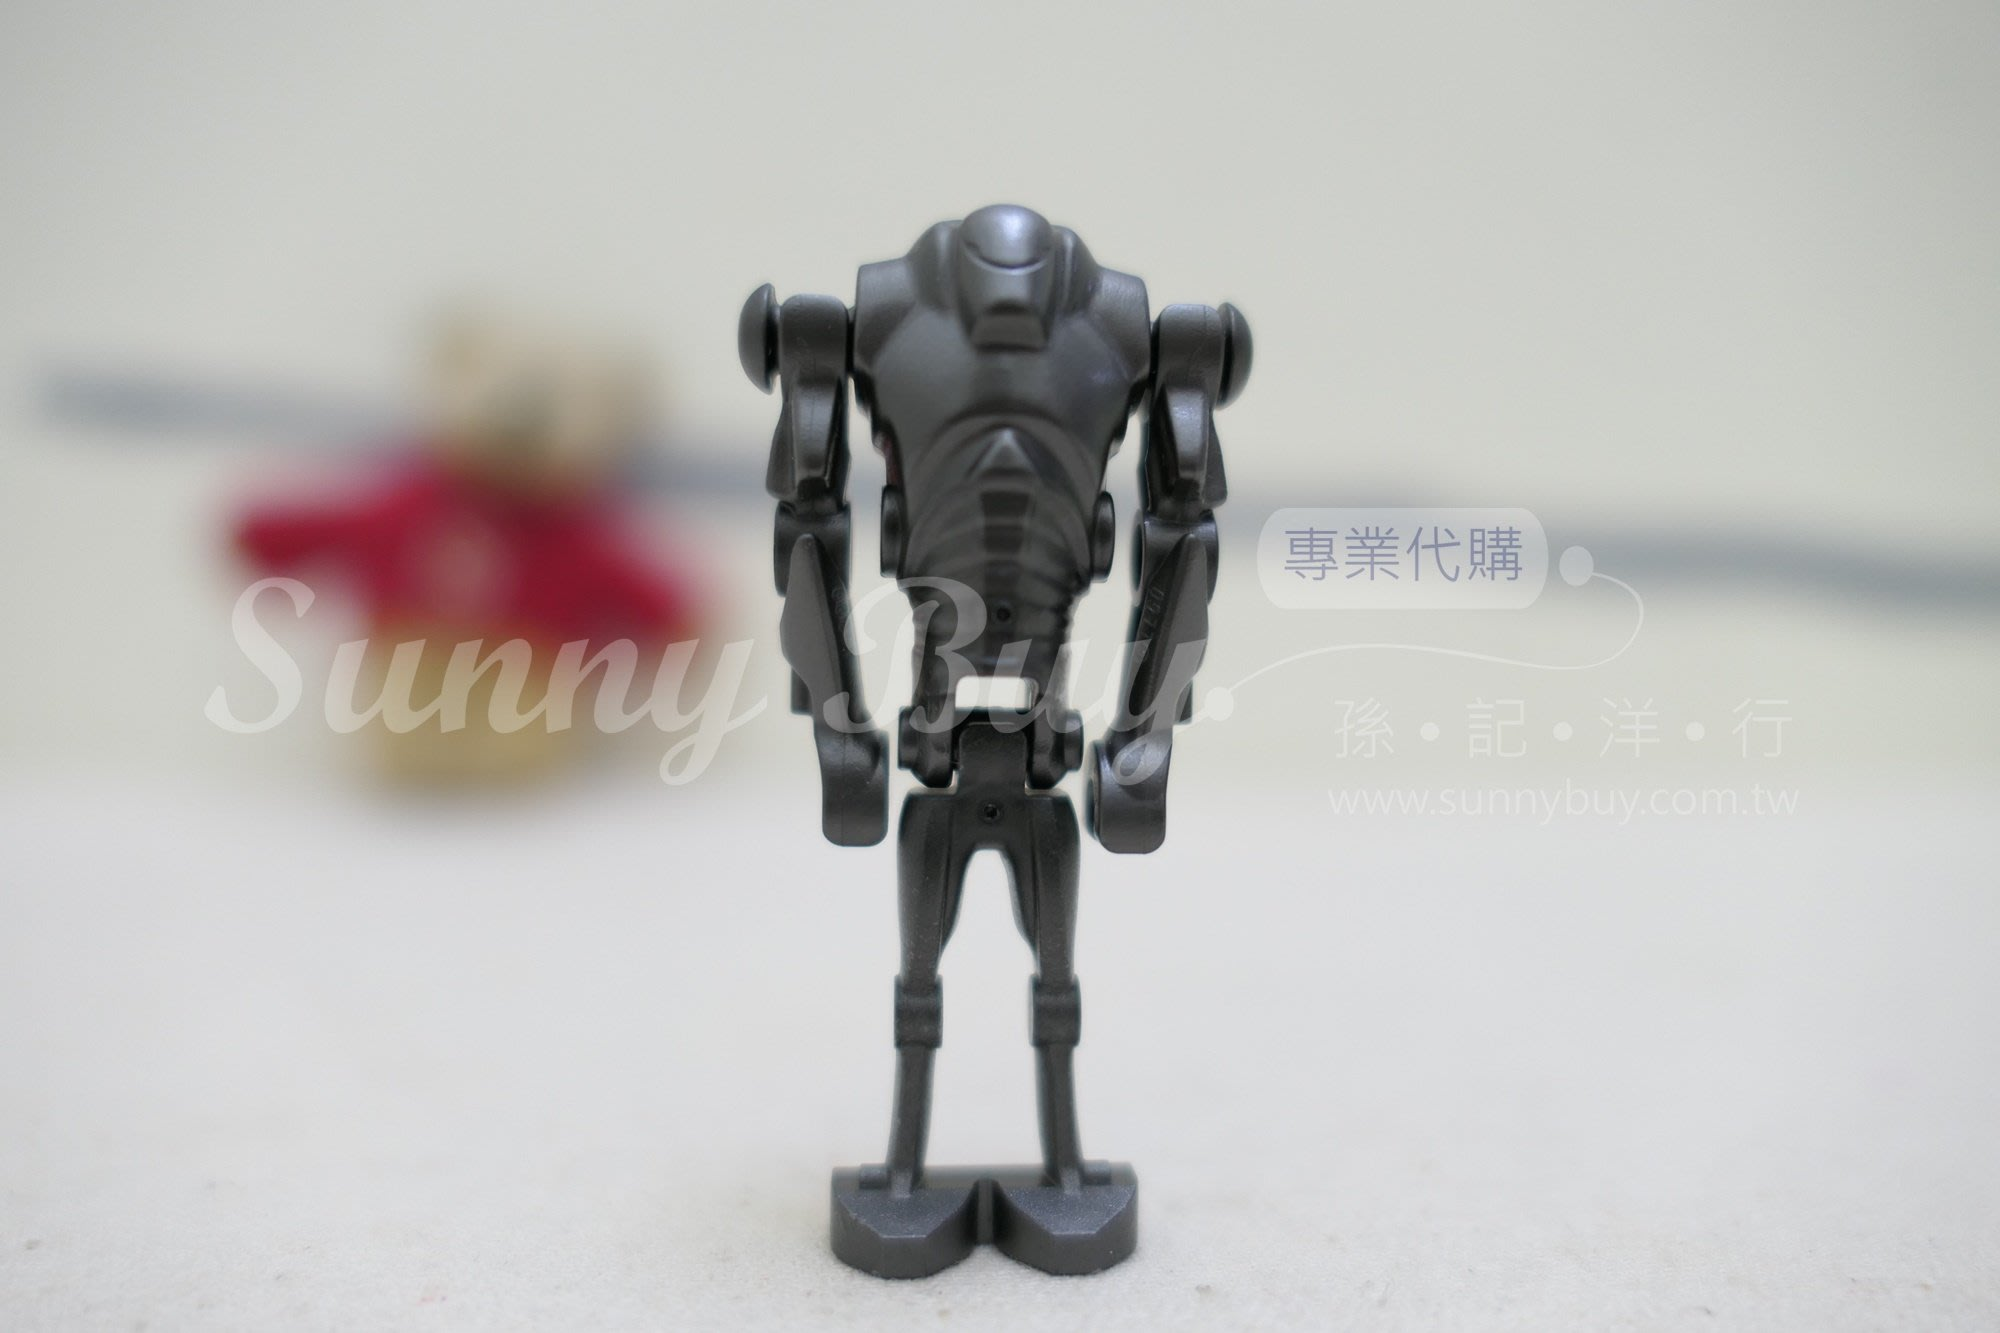 【Sunny Buy 】◎二手◎Lego sw092 超級戰鬥機器人 Super Battle Droid